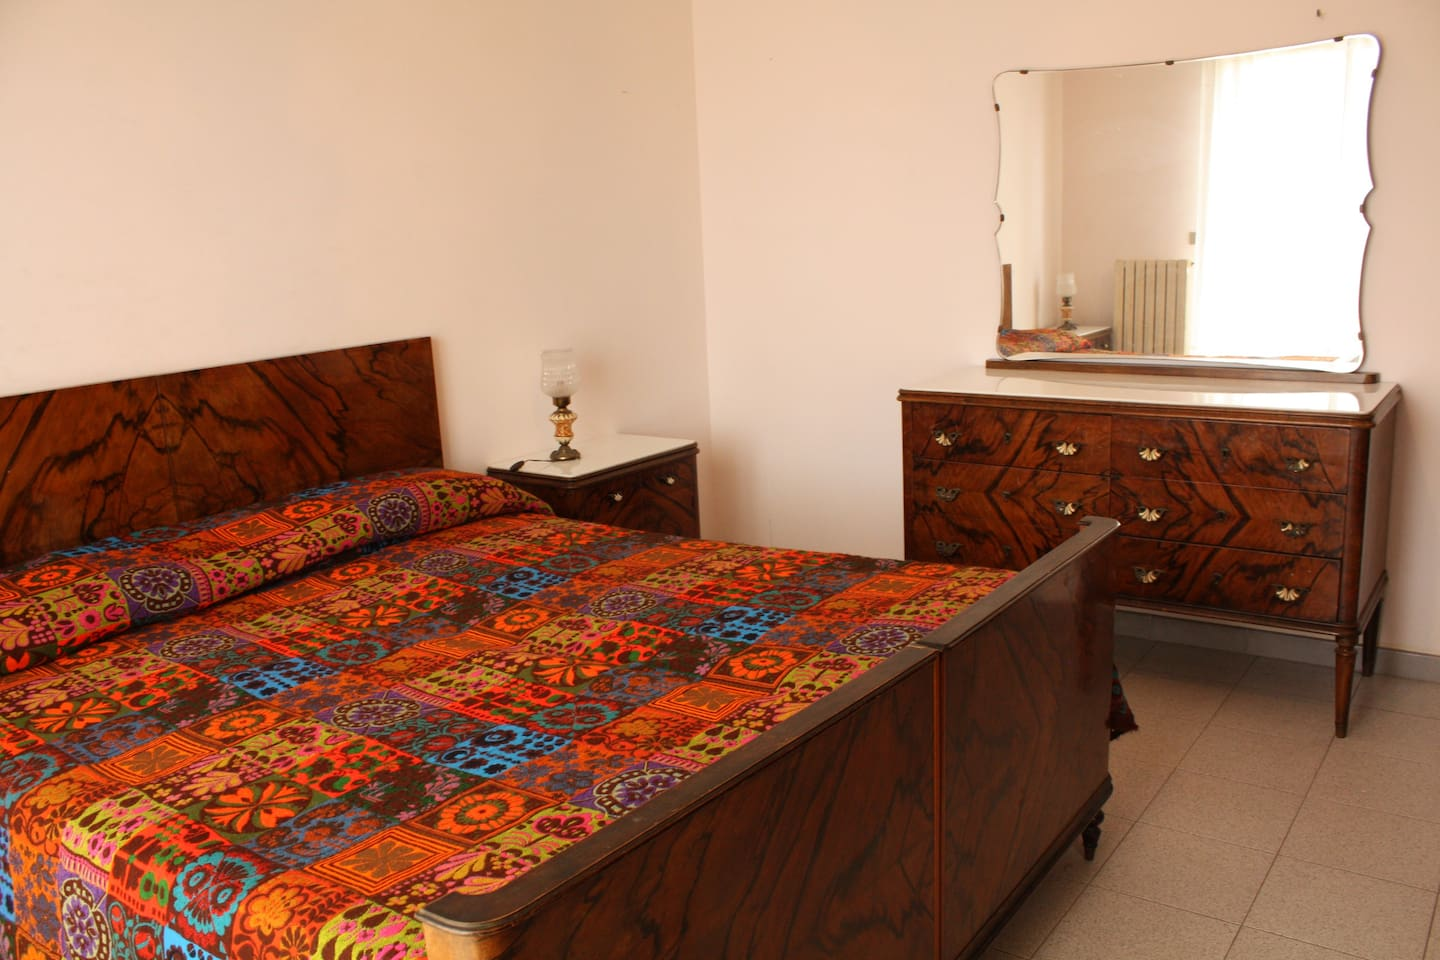 Double-bed room. All furniture is original antique and renovated.